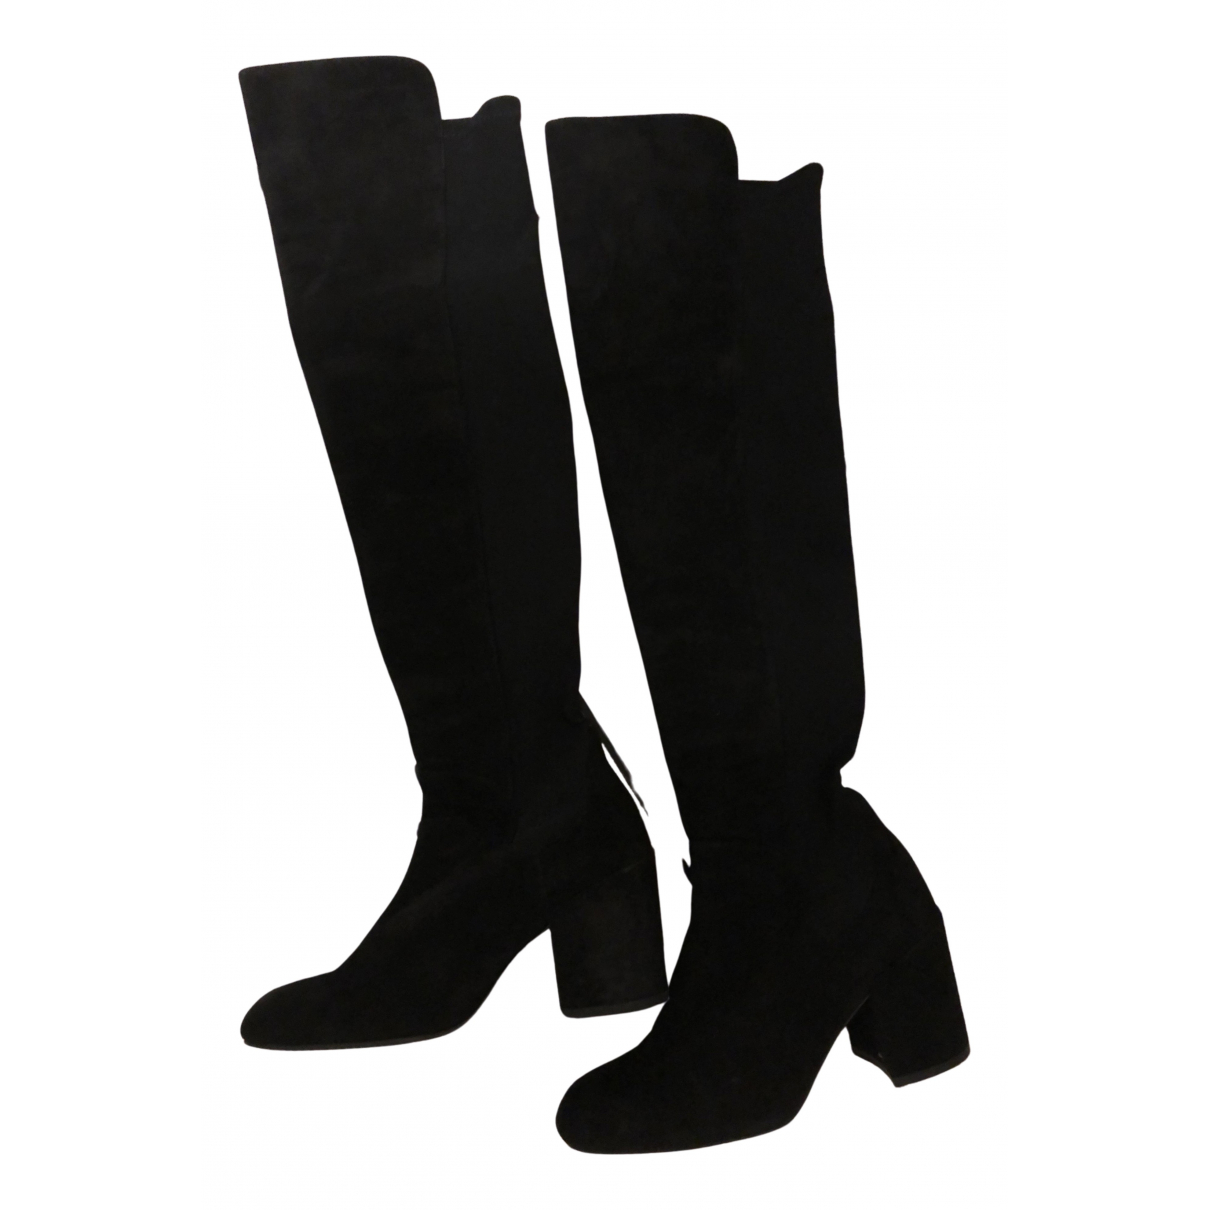 Stuart Weitzman N Black Leather Boots for Women 36 EU